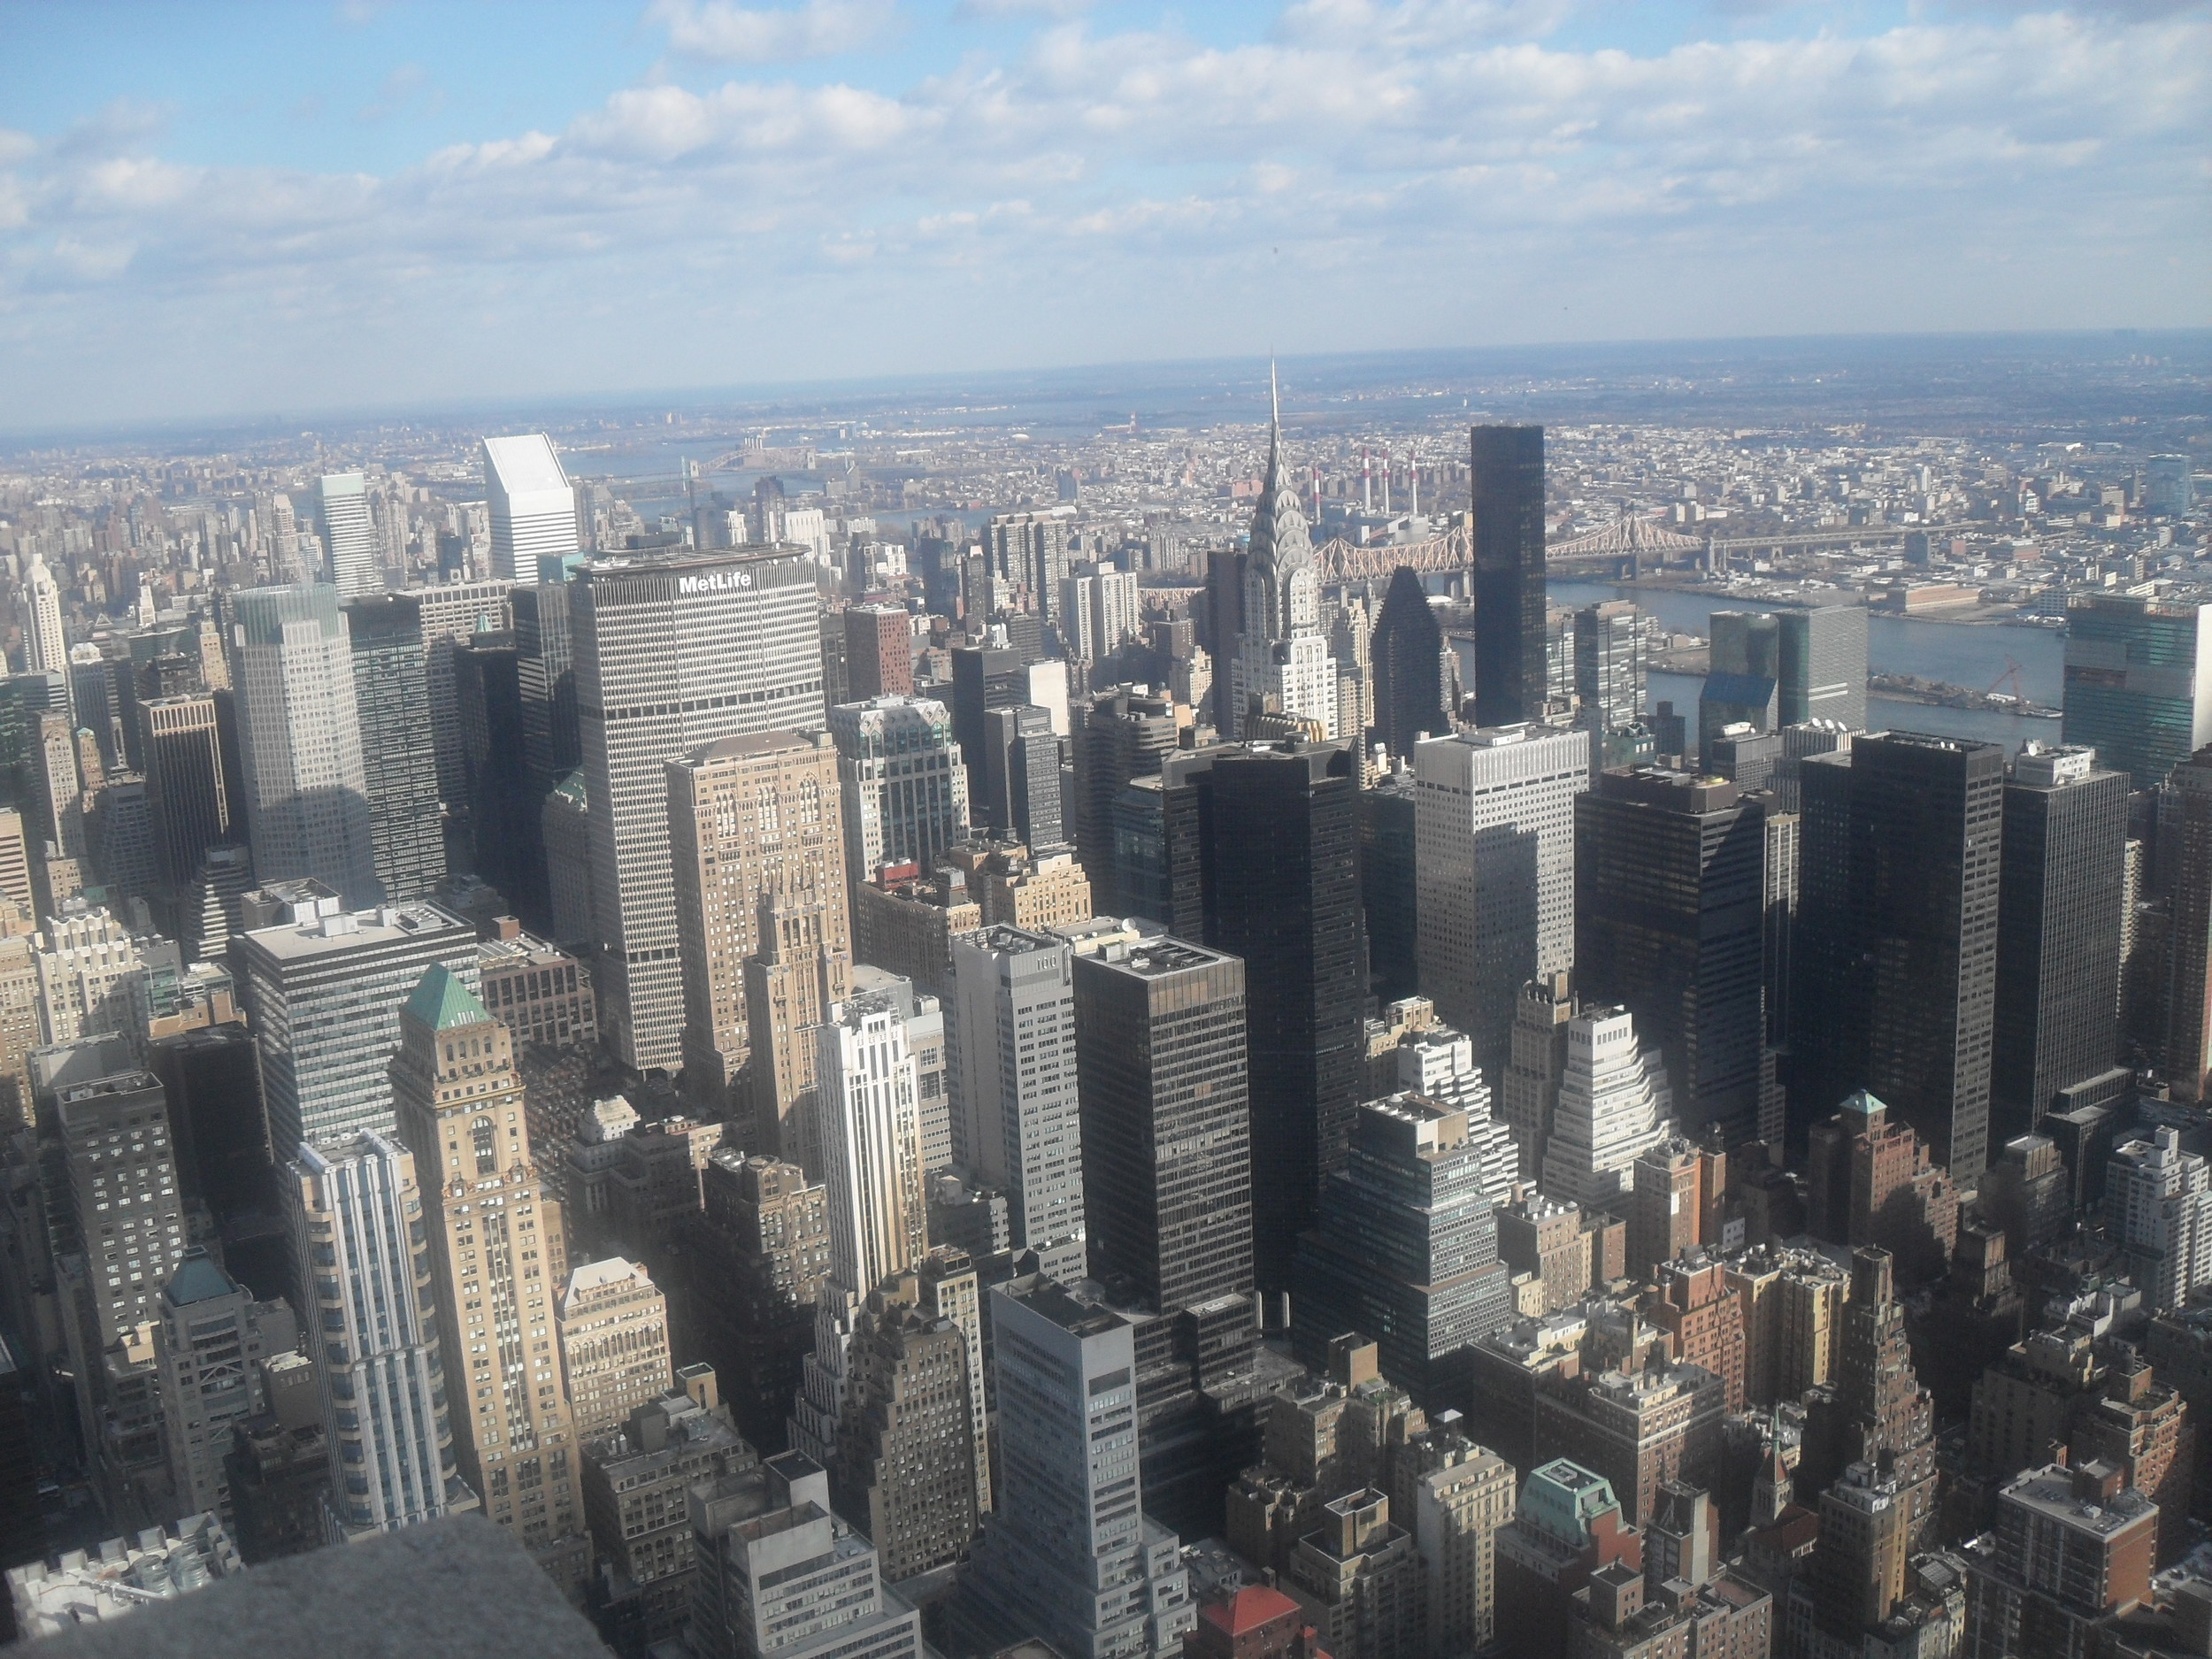 A picture of NYC from the Empire State Building